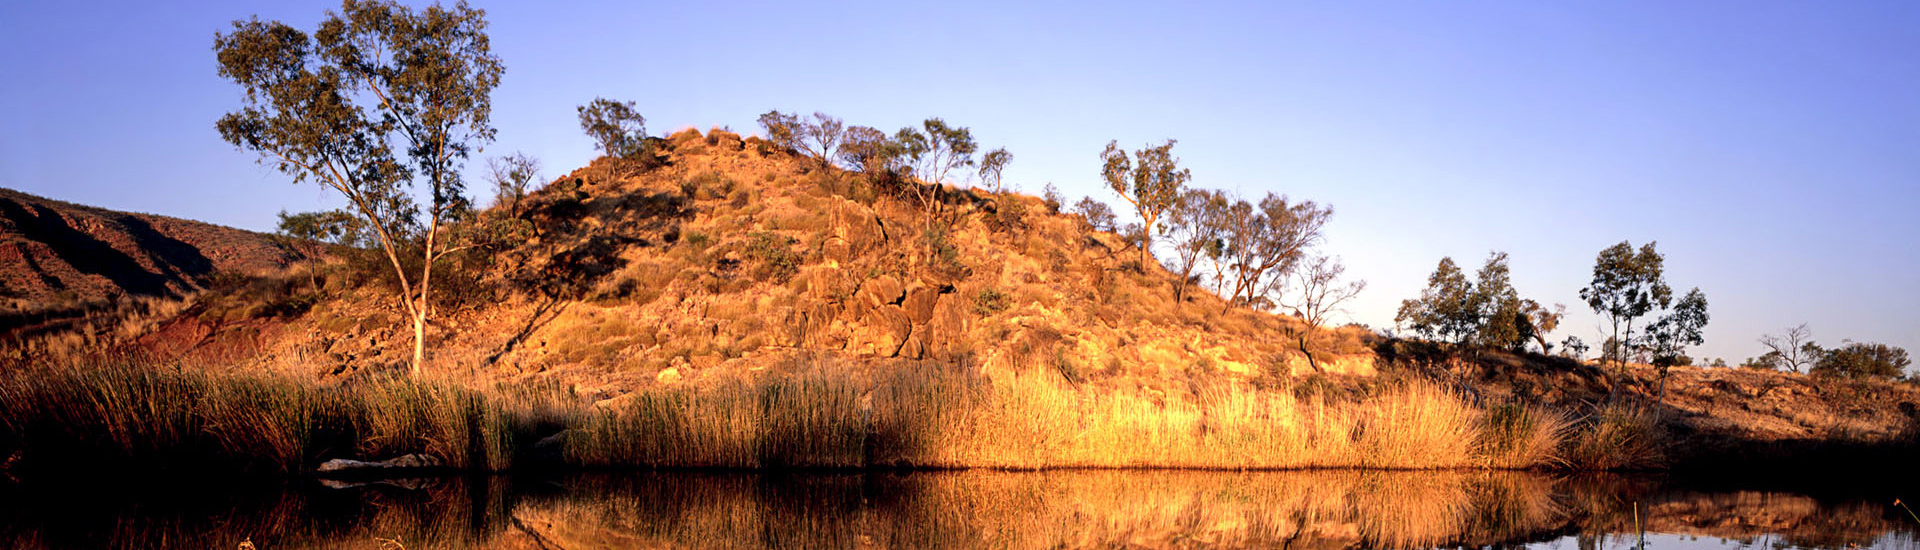 Finke River near Glen Helen, West Macdonnell Range, Northern Ter